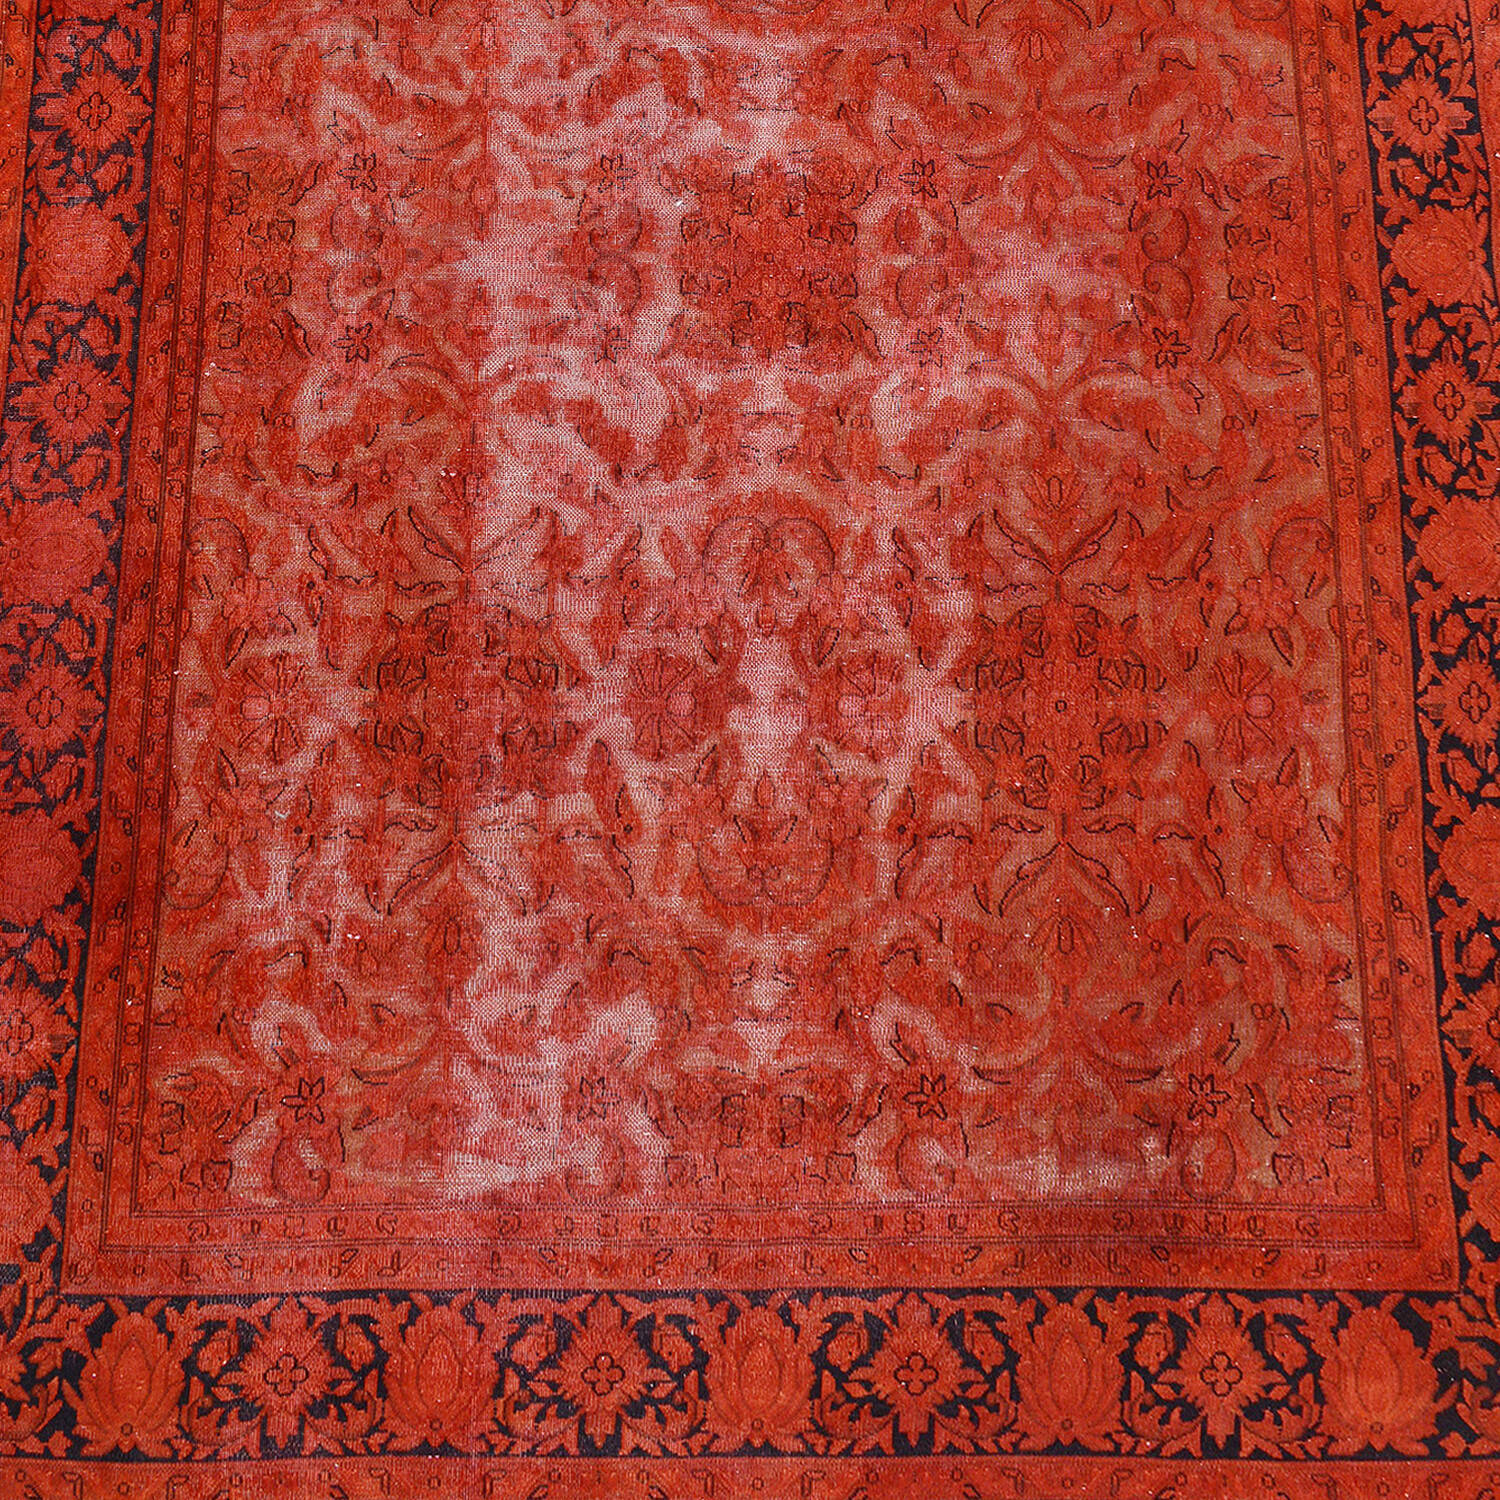 Antique Over Dyed Floral Kerman Persian Area Rug 7x9 image 3